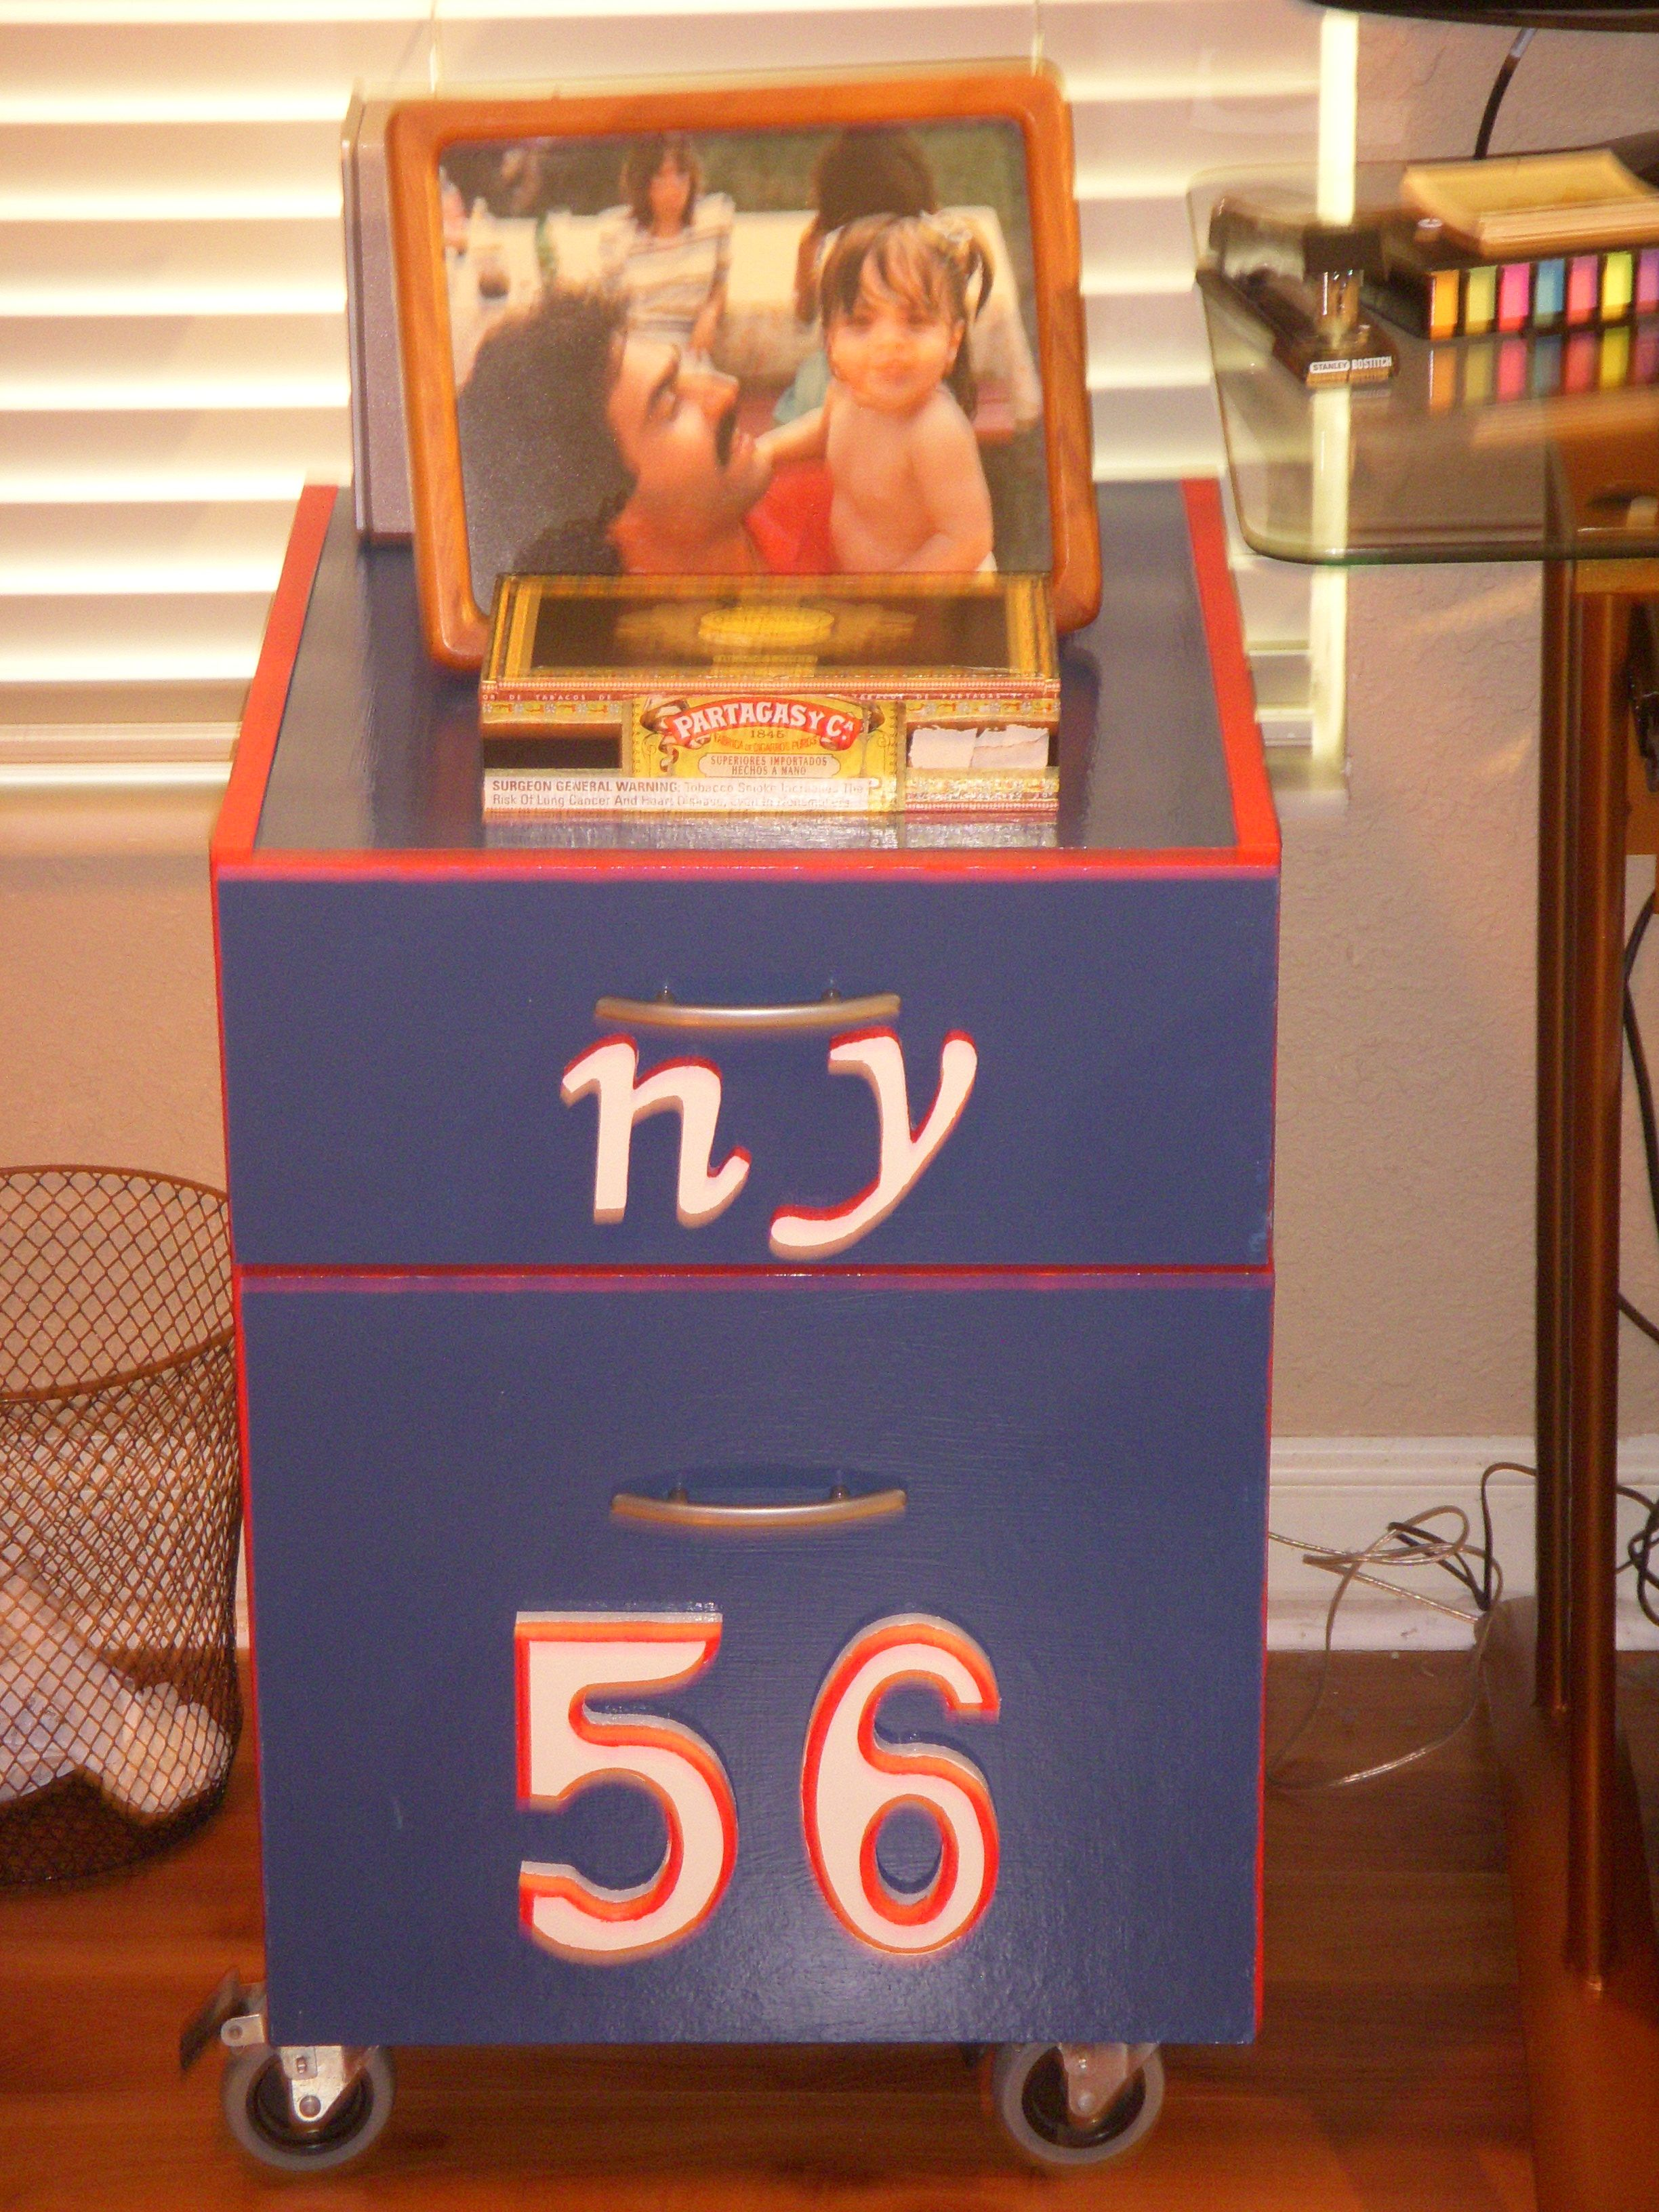 refinished old file cabinet, Go Giants   My Hobby   Pinterest   Filing